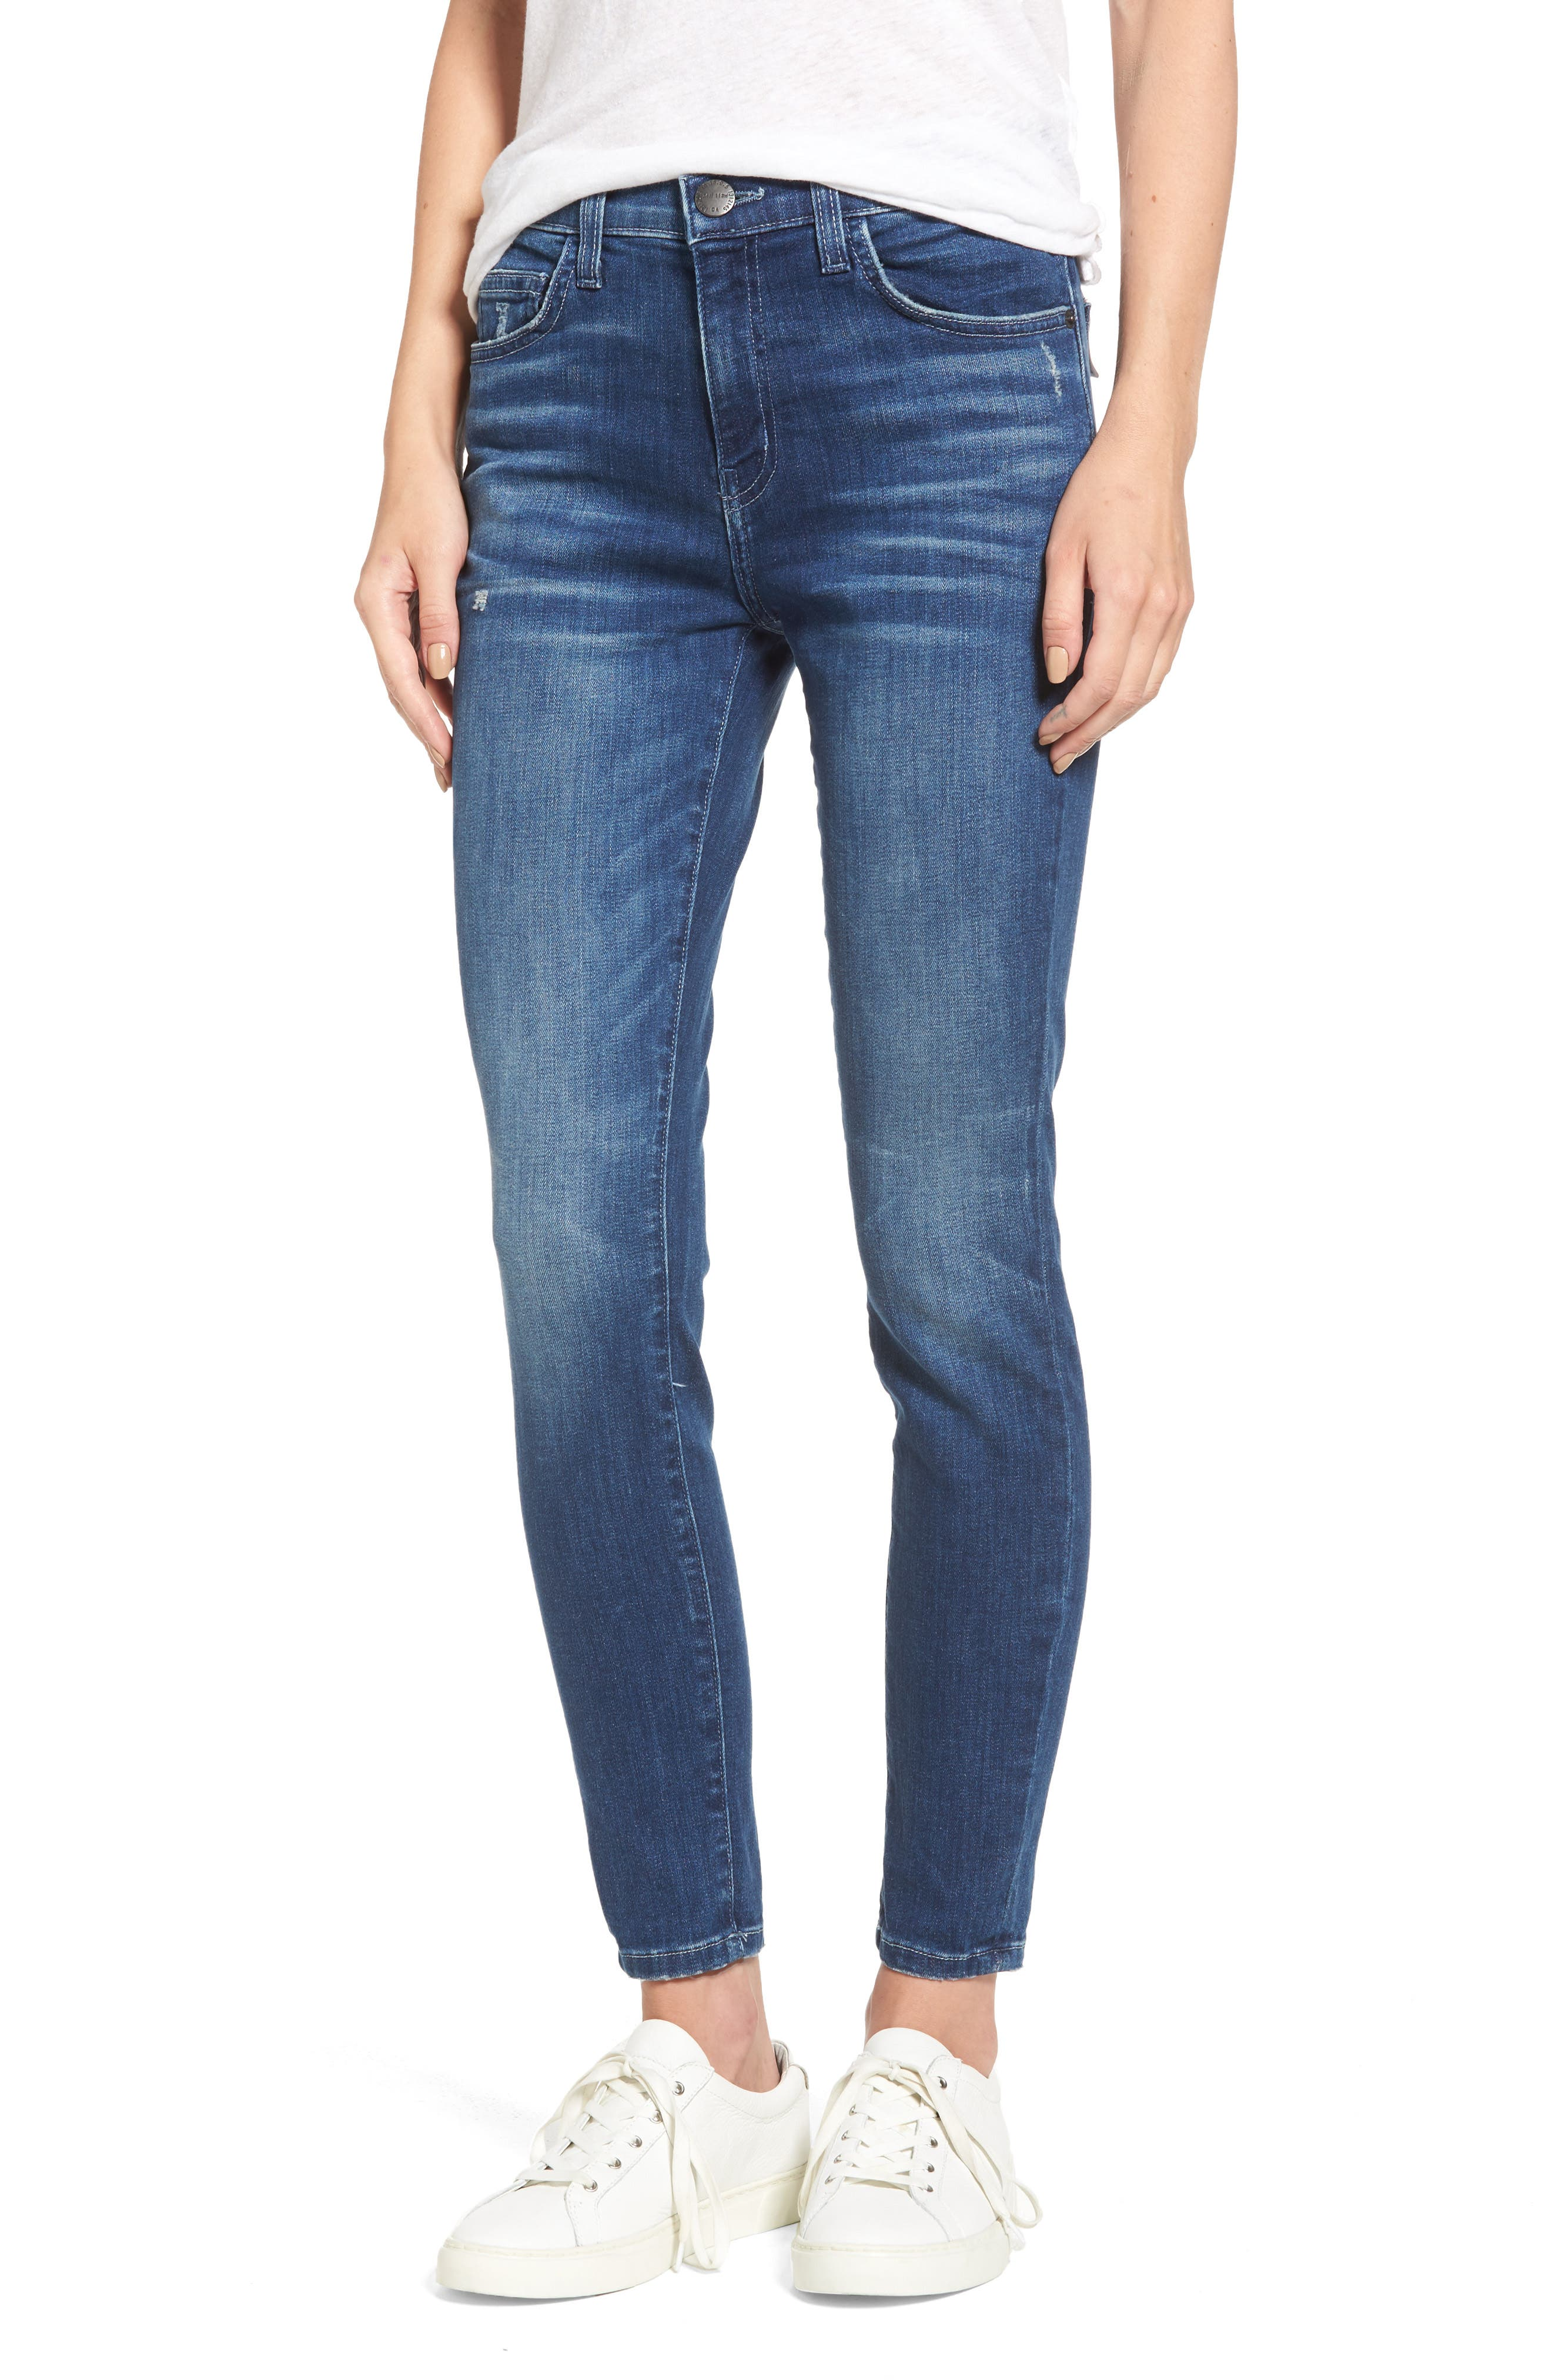 The Stiletto High Waist Skinny Jeans,                             Main thumbnail 1, color,                             463